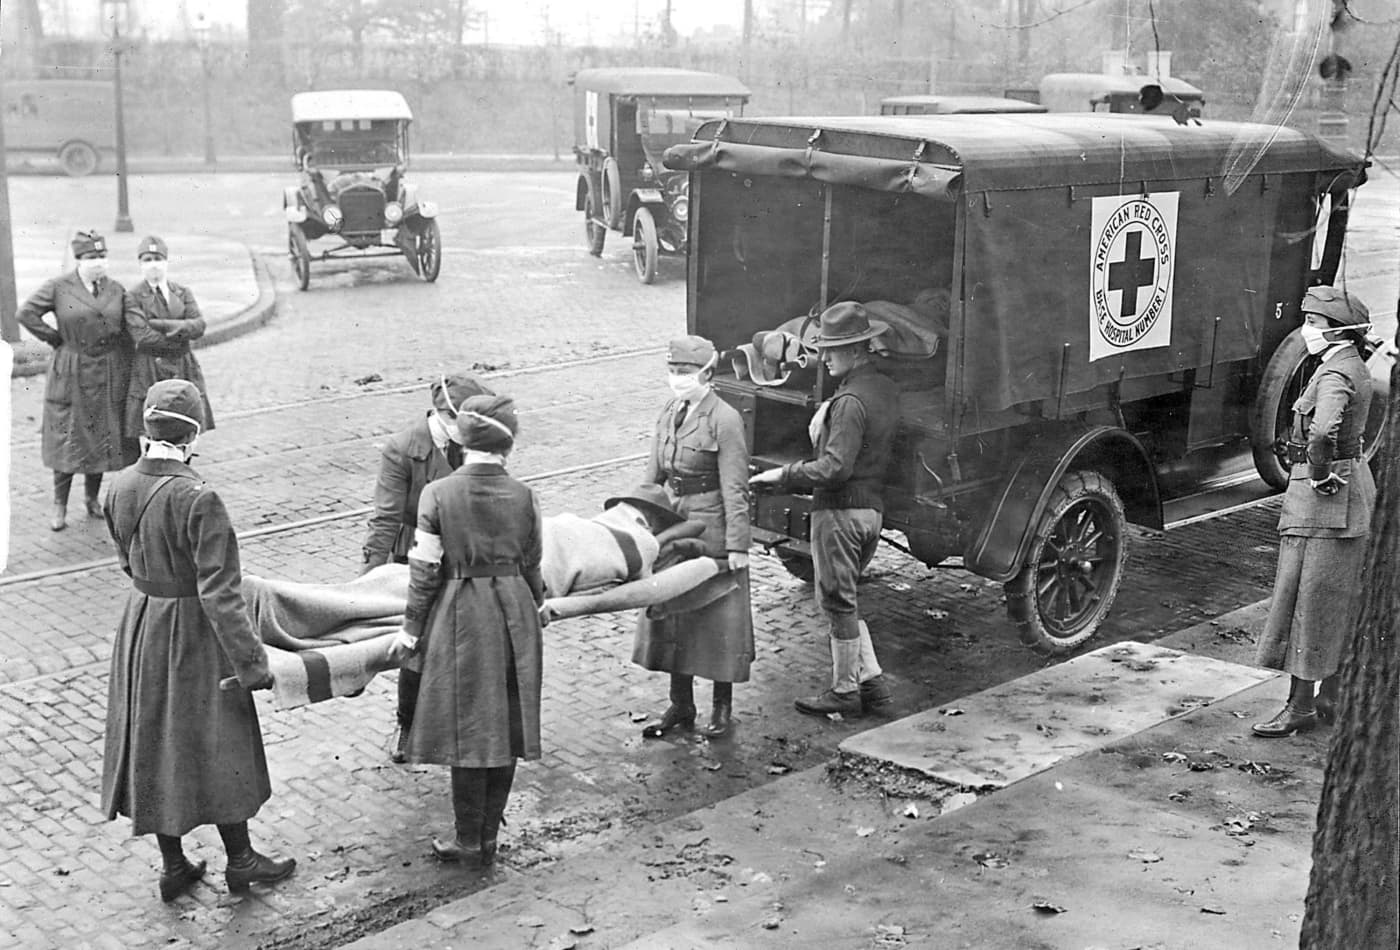 Scientists say the coronavirus is at least as deadly as the 1918 flu pandemic